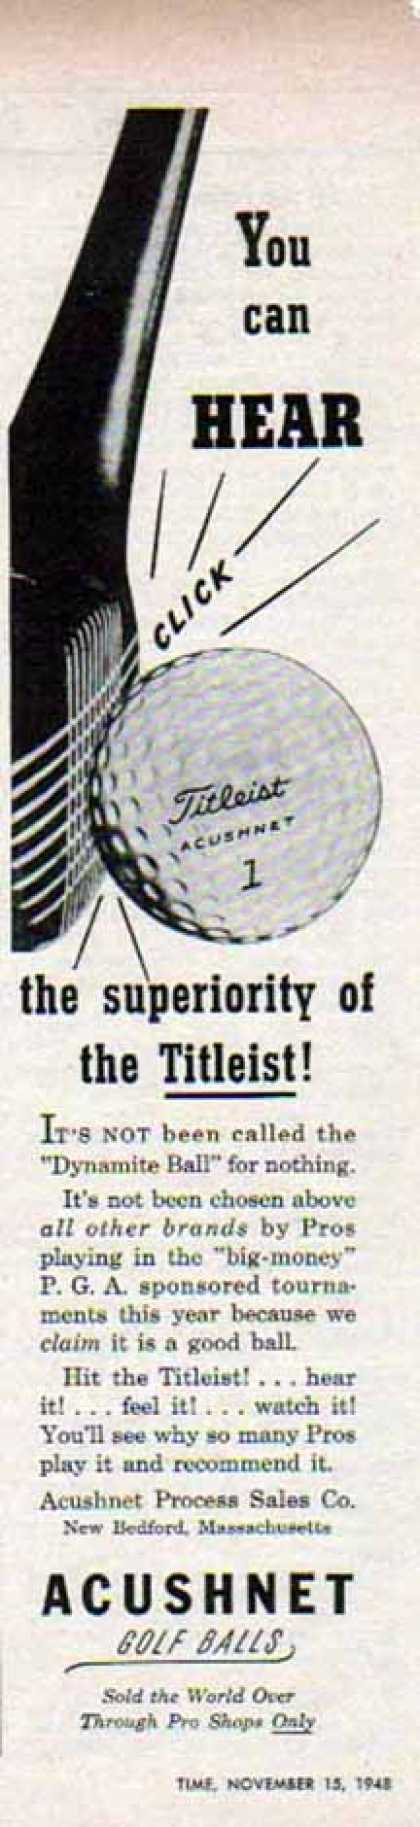 Titleist Acushnet Golf Ball – You Can Hear Click (1948)